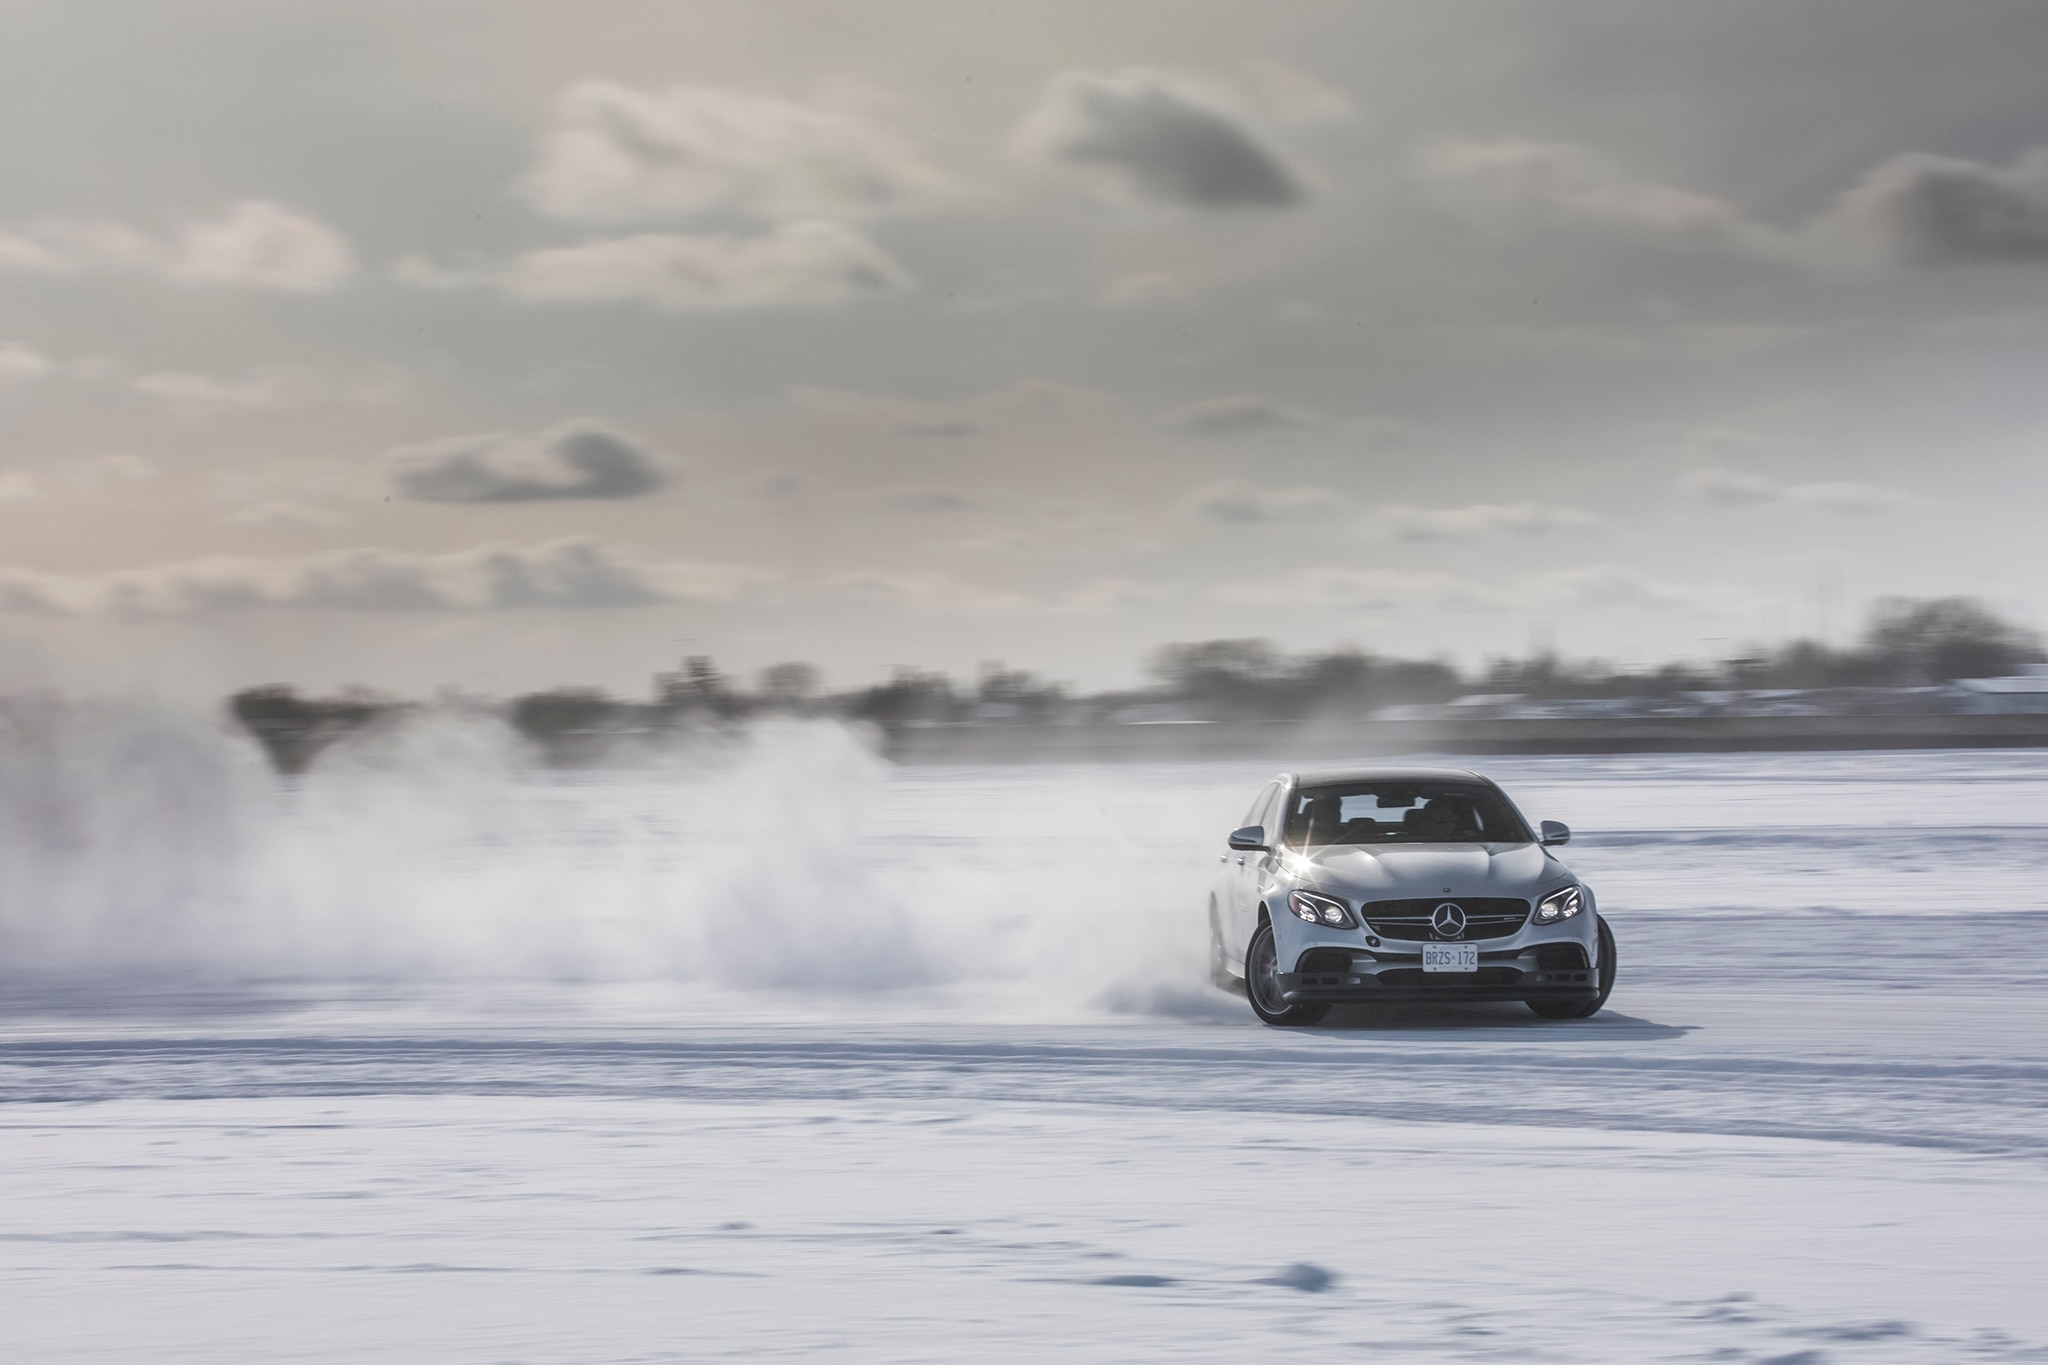 Amg Driving Academy >> Sliding in the Snow at Mercedes-AMG's Winter Sporting Driving School | Automobile Magazine